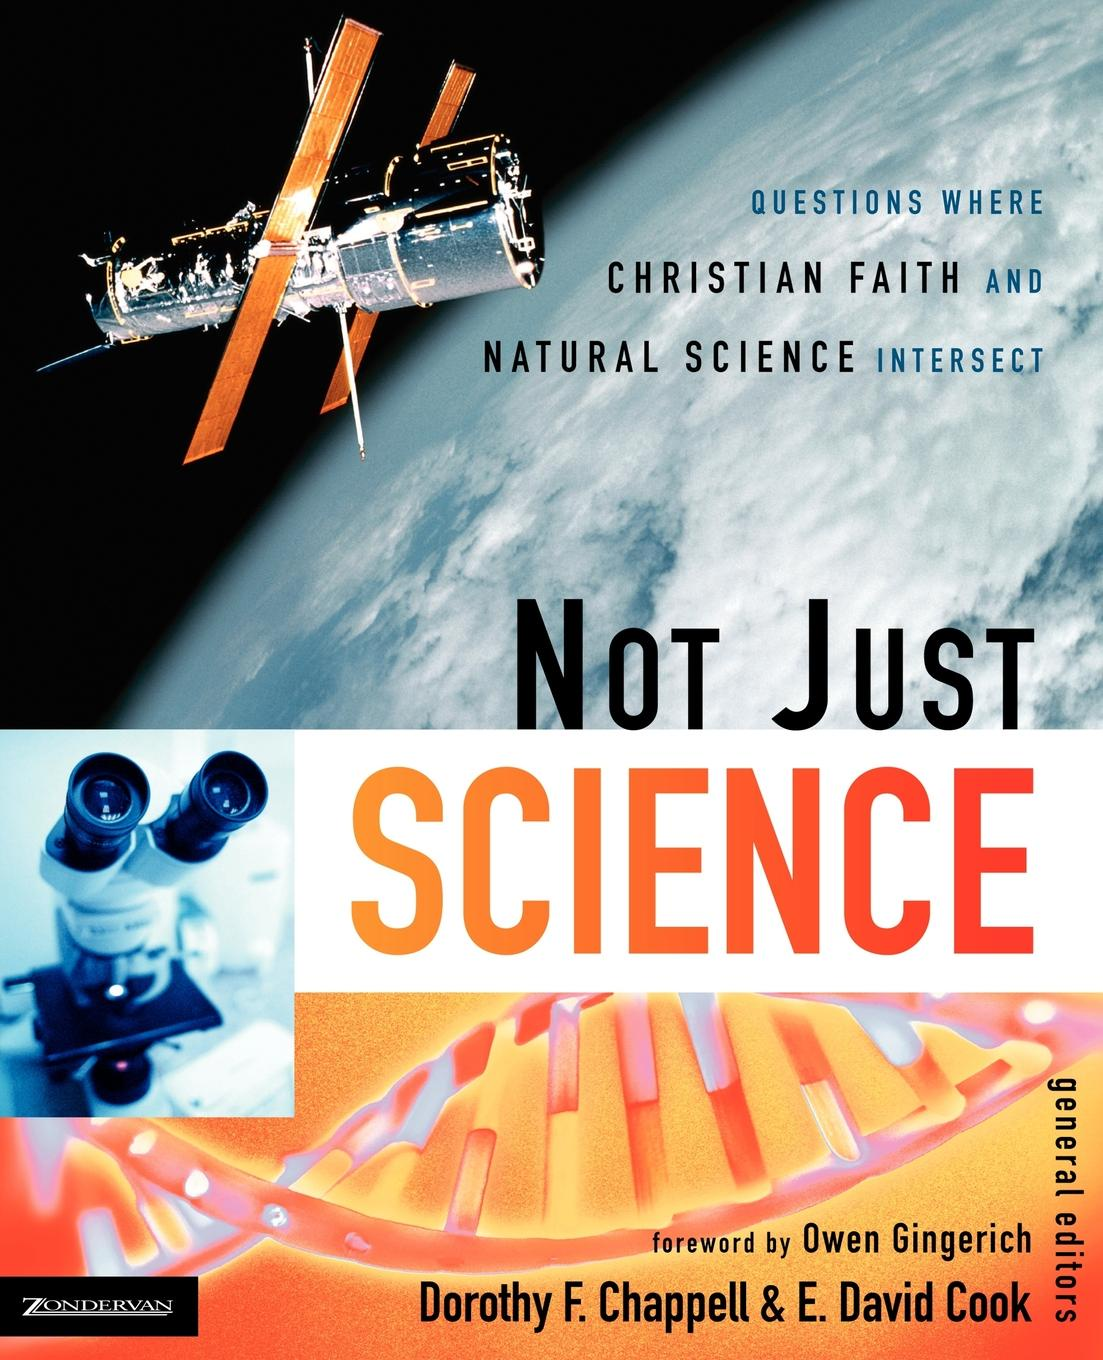 Not Just Science. Questions Where Christian Faith and Natural Science Intersect